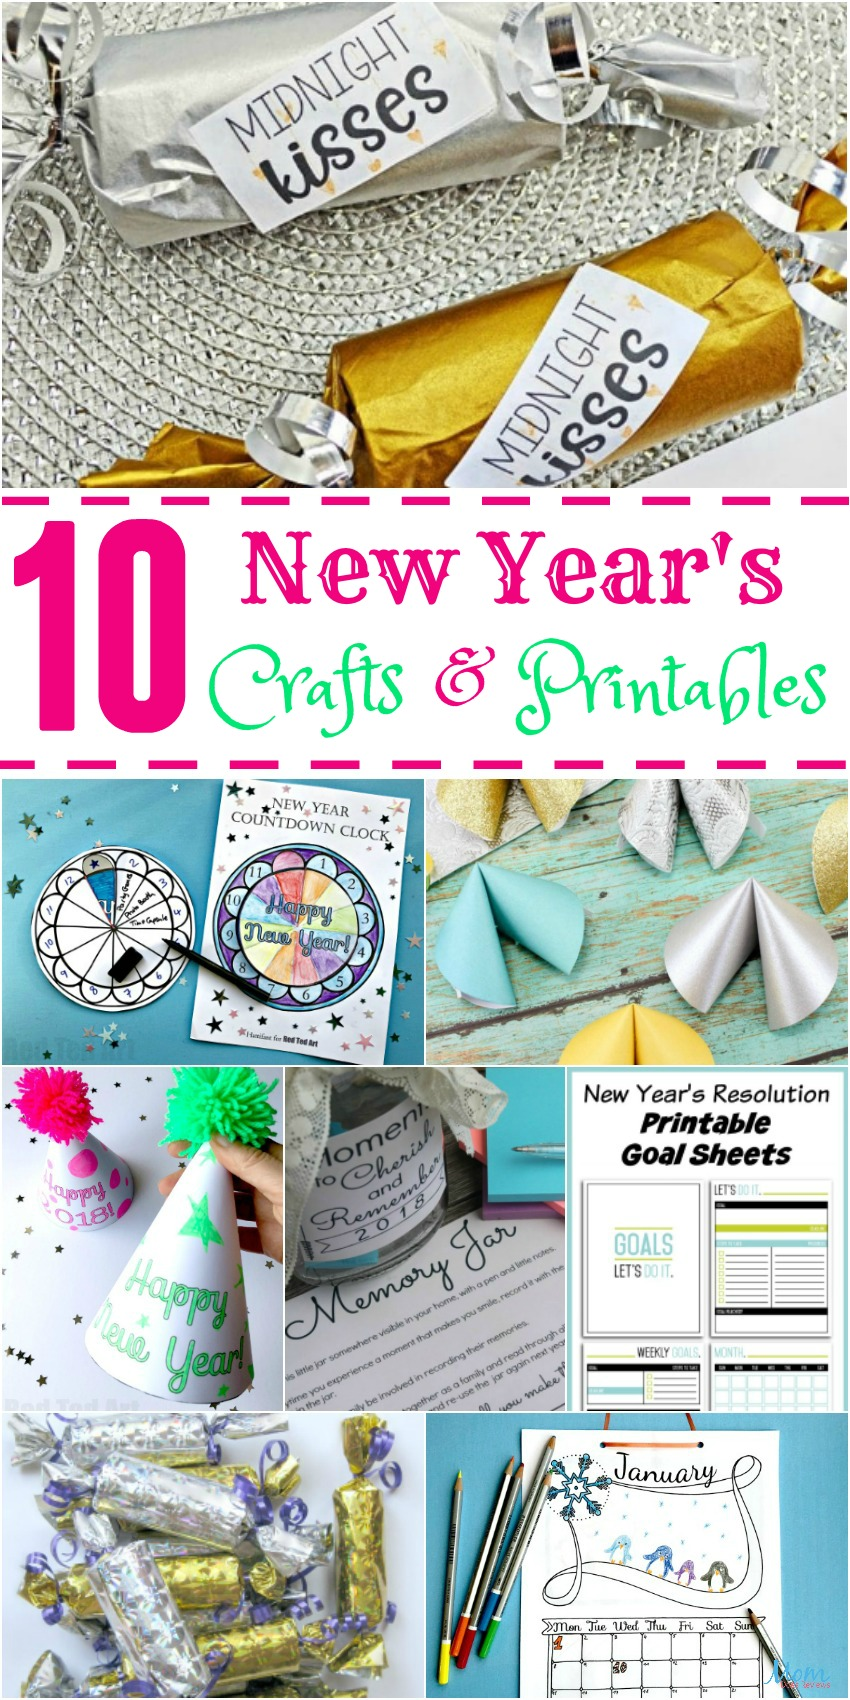 10 New Year's Crafts and Printables to Help you Celebrate #crafts #printables #newyear